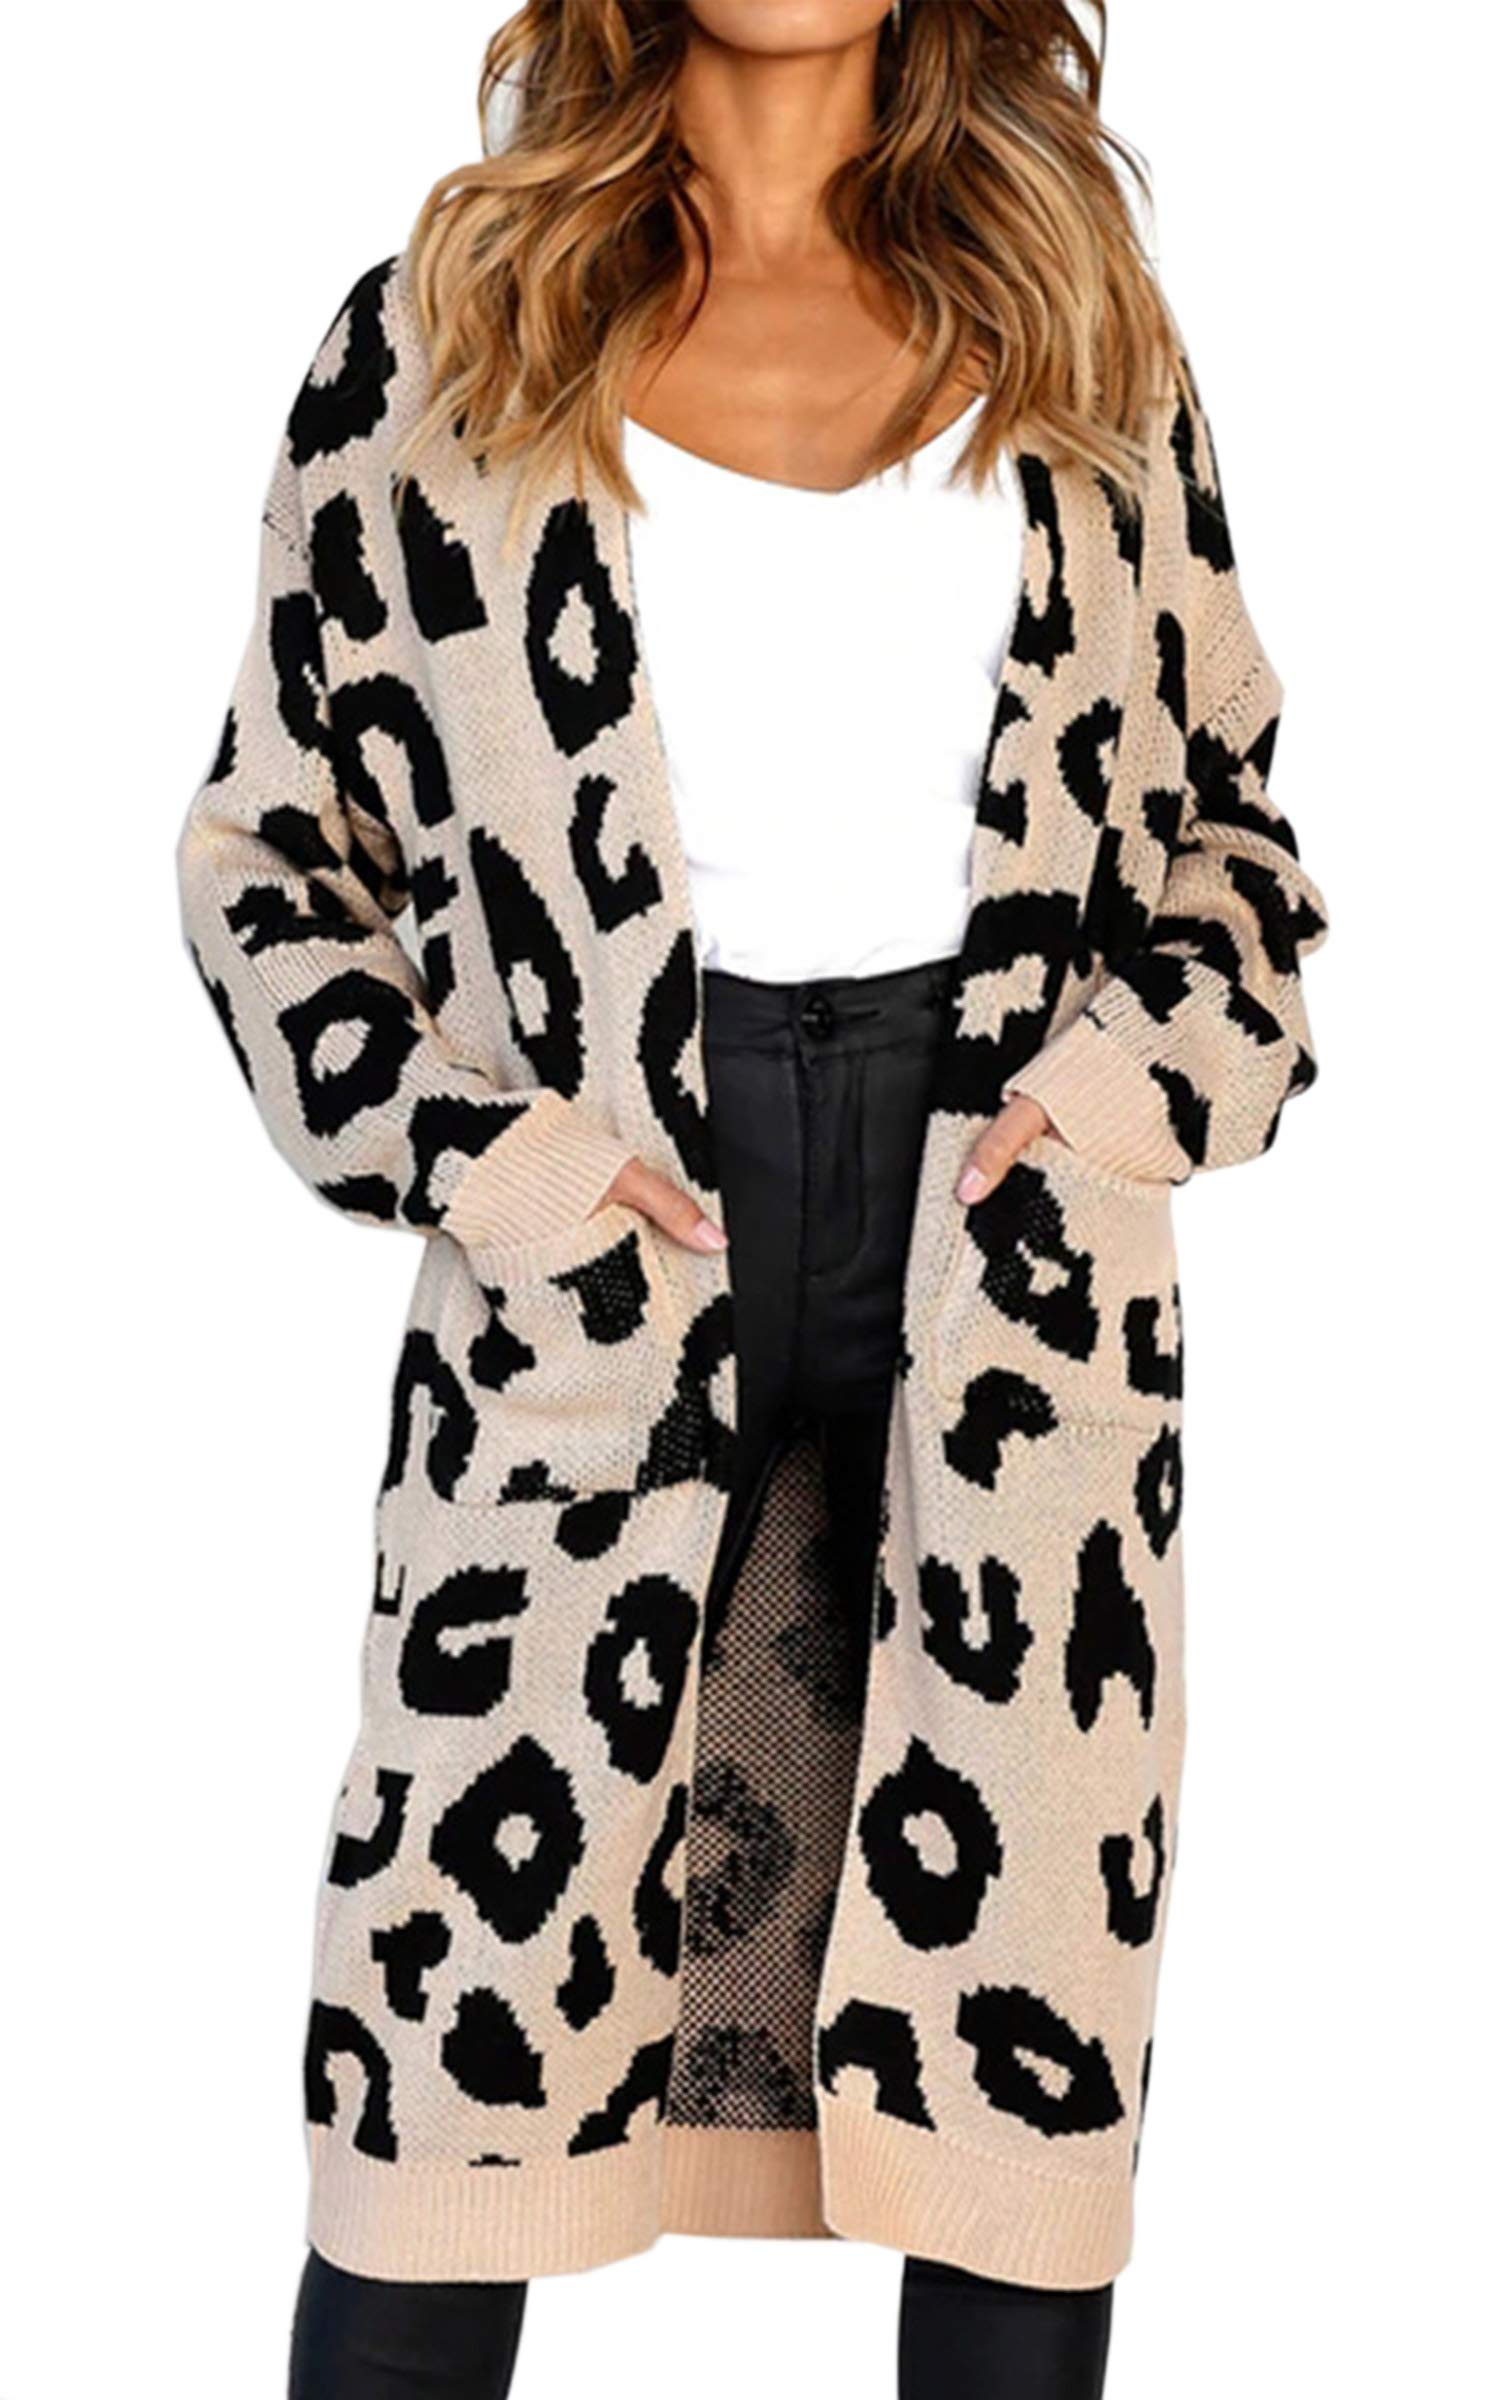 Angashion Women's Long Sleeves Leopard Print Knitting Cardigan Open Front Warm Sweater Outwear Coats with Pocket Khaki S